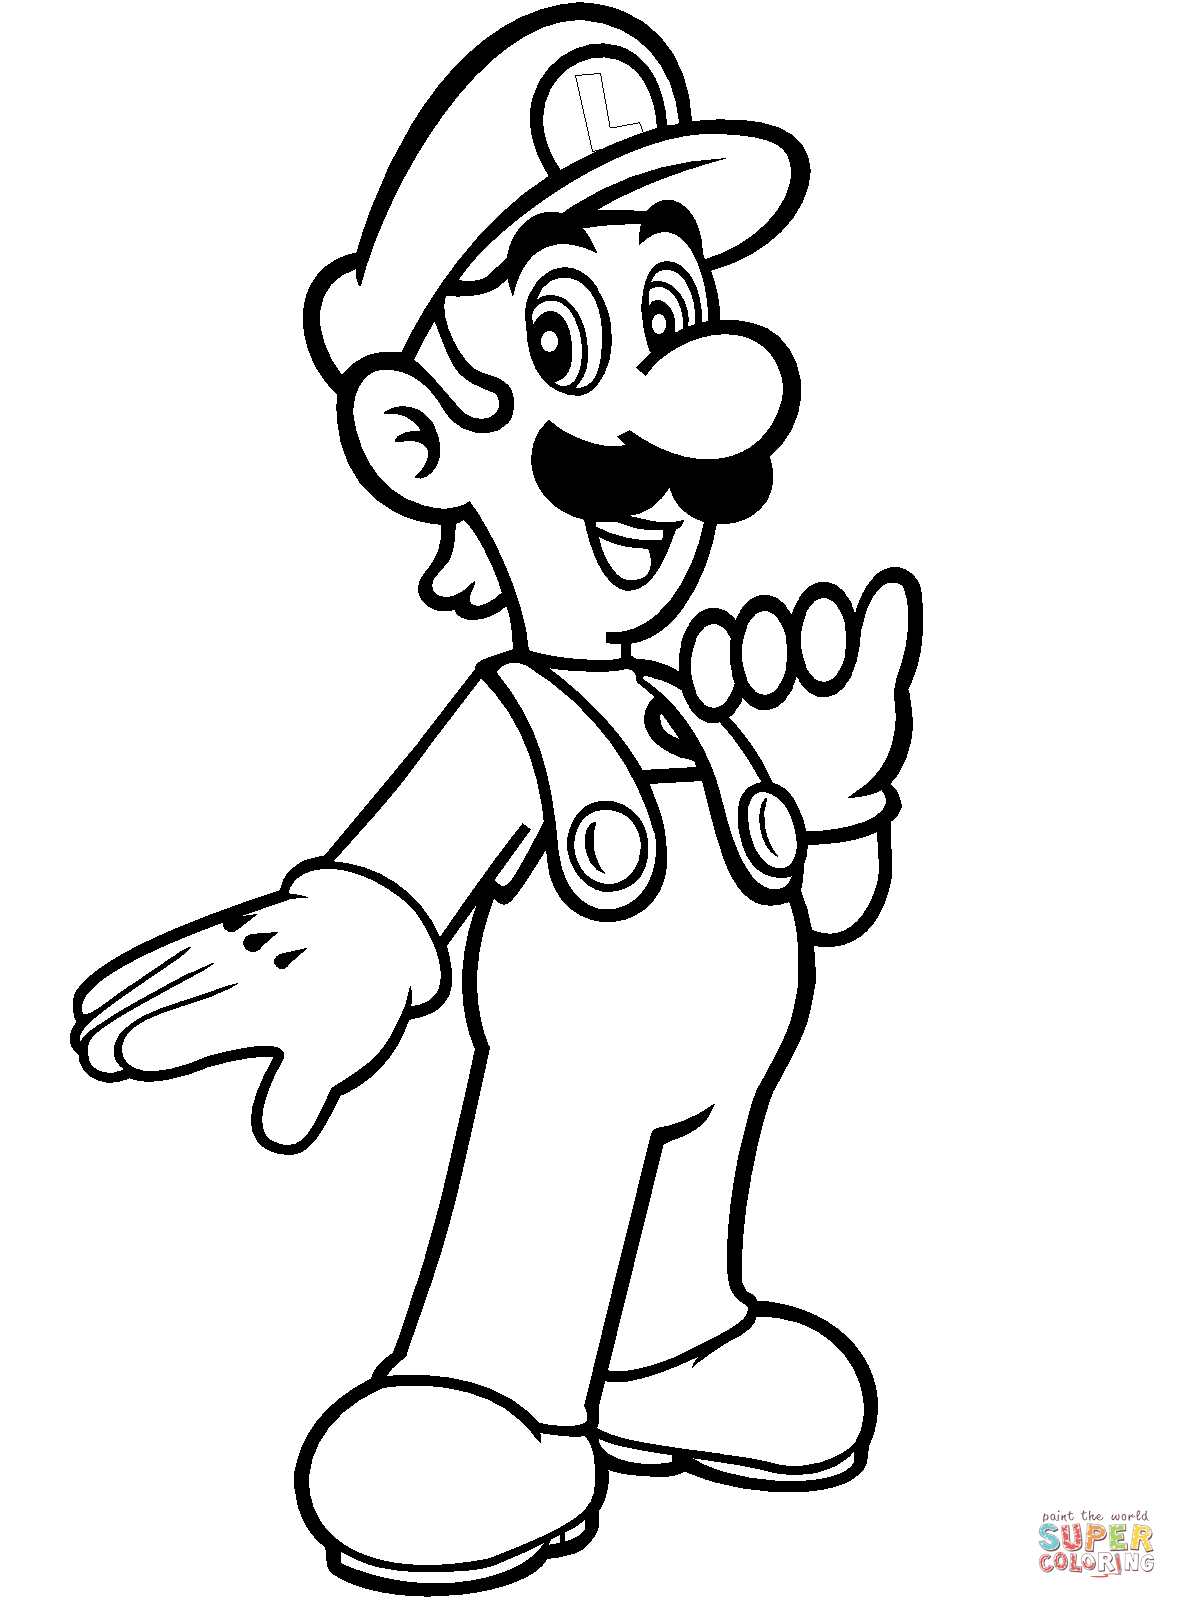 super mario princess peach coloring pages - super mario luigi coloring pages super mario luigi